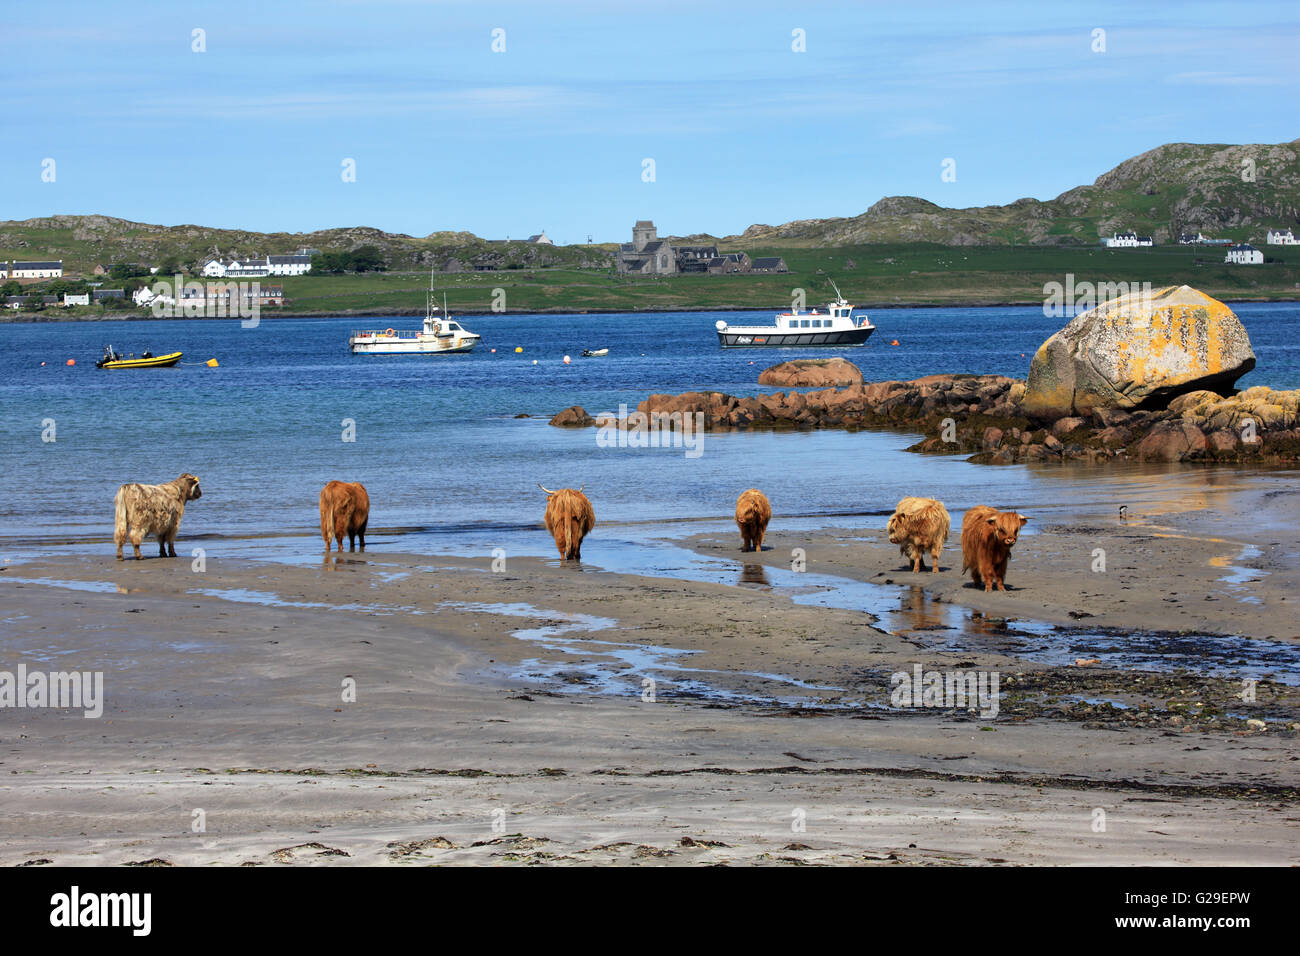 iona-scotland-uk-26th-may-2016-highland-